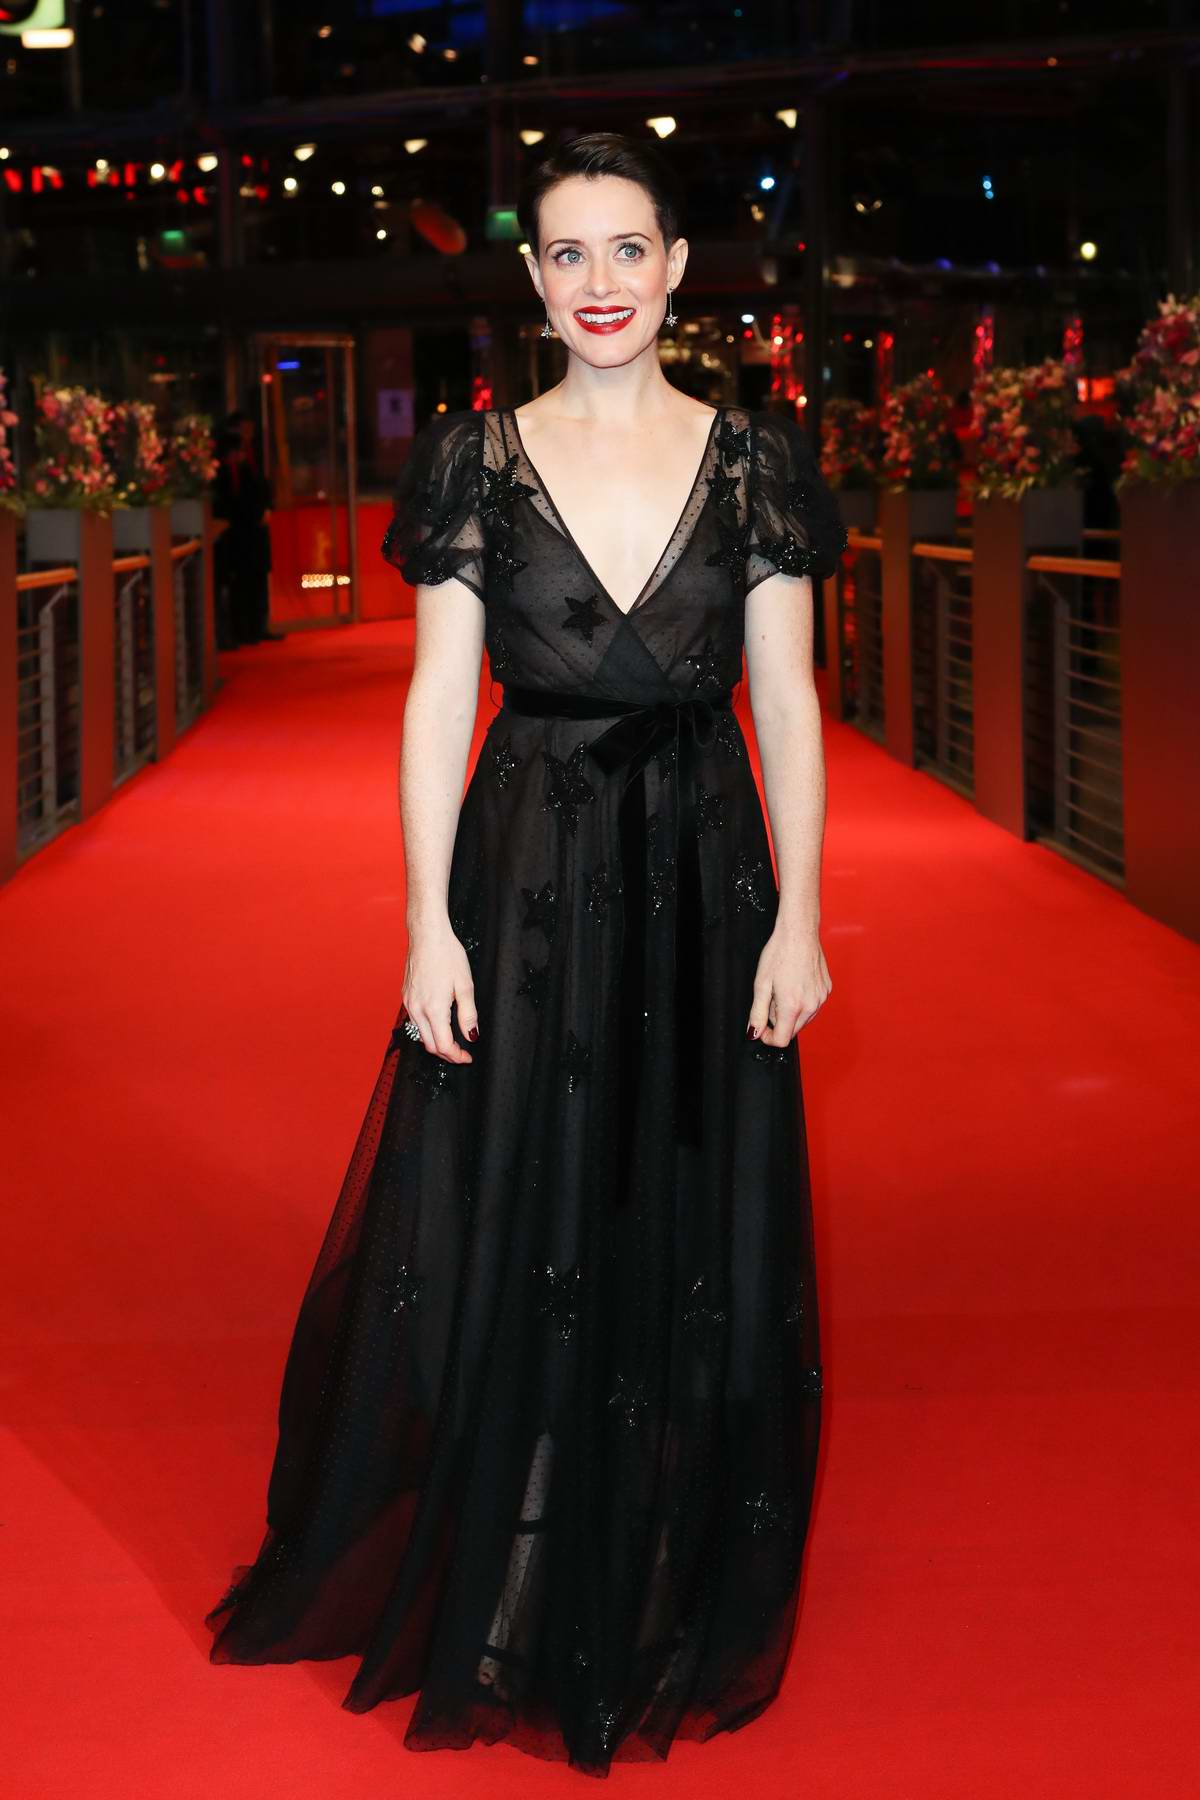 Claire Foy attends 'Unsane' premiere during 68th Berlin Film Festival in Berlin, Germany